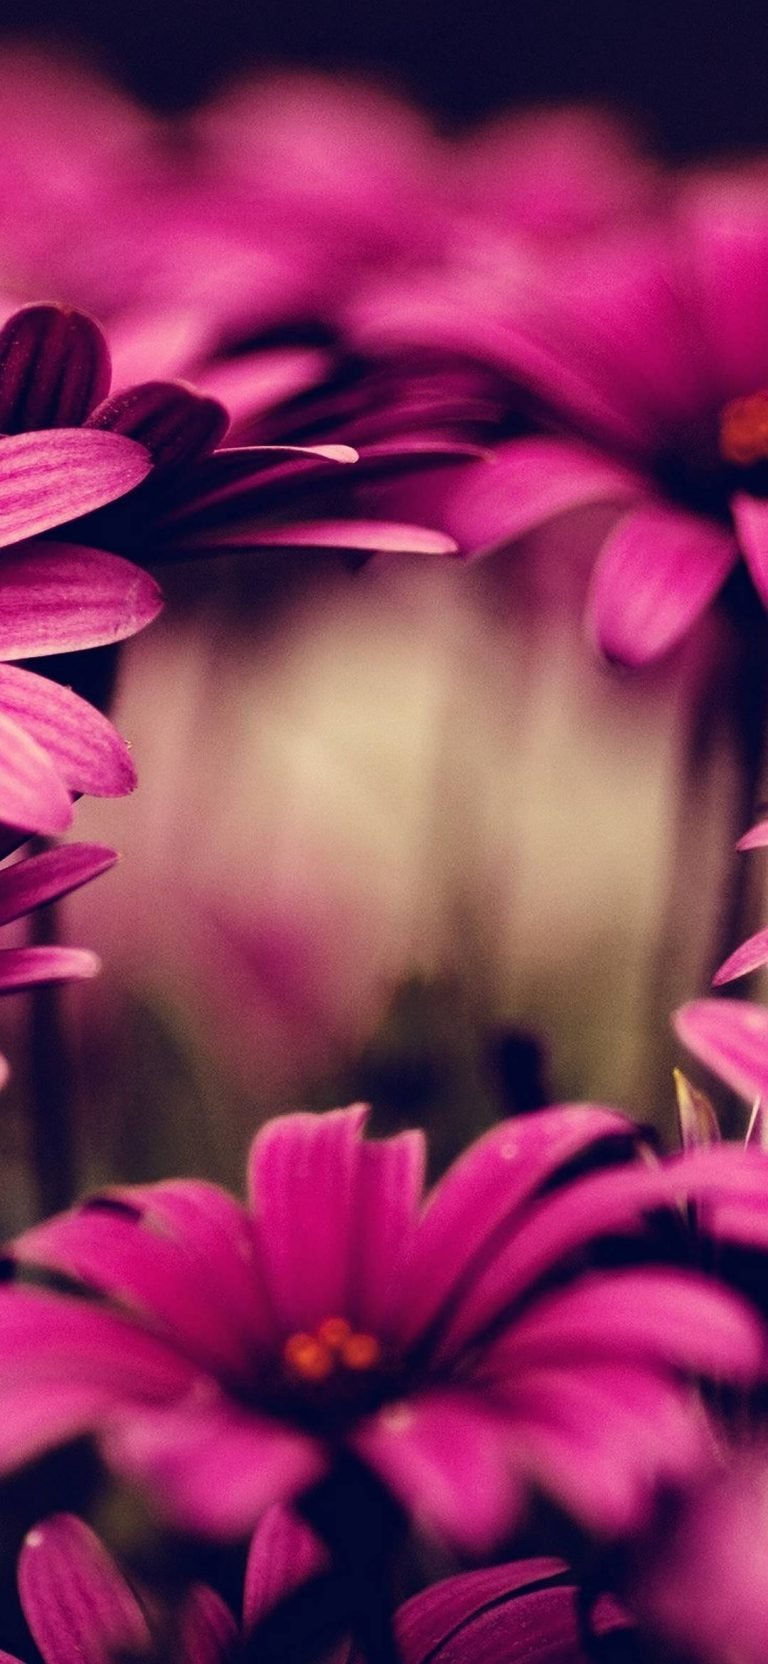 Nature-Flowers-Pink-1080x2340-768x1664-1 - 51+ BEST Free vivo Z1 Pro Phone Wallpapers [year]